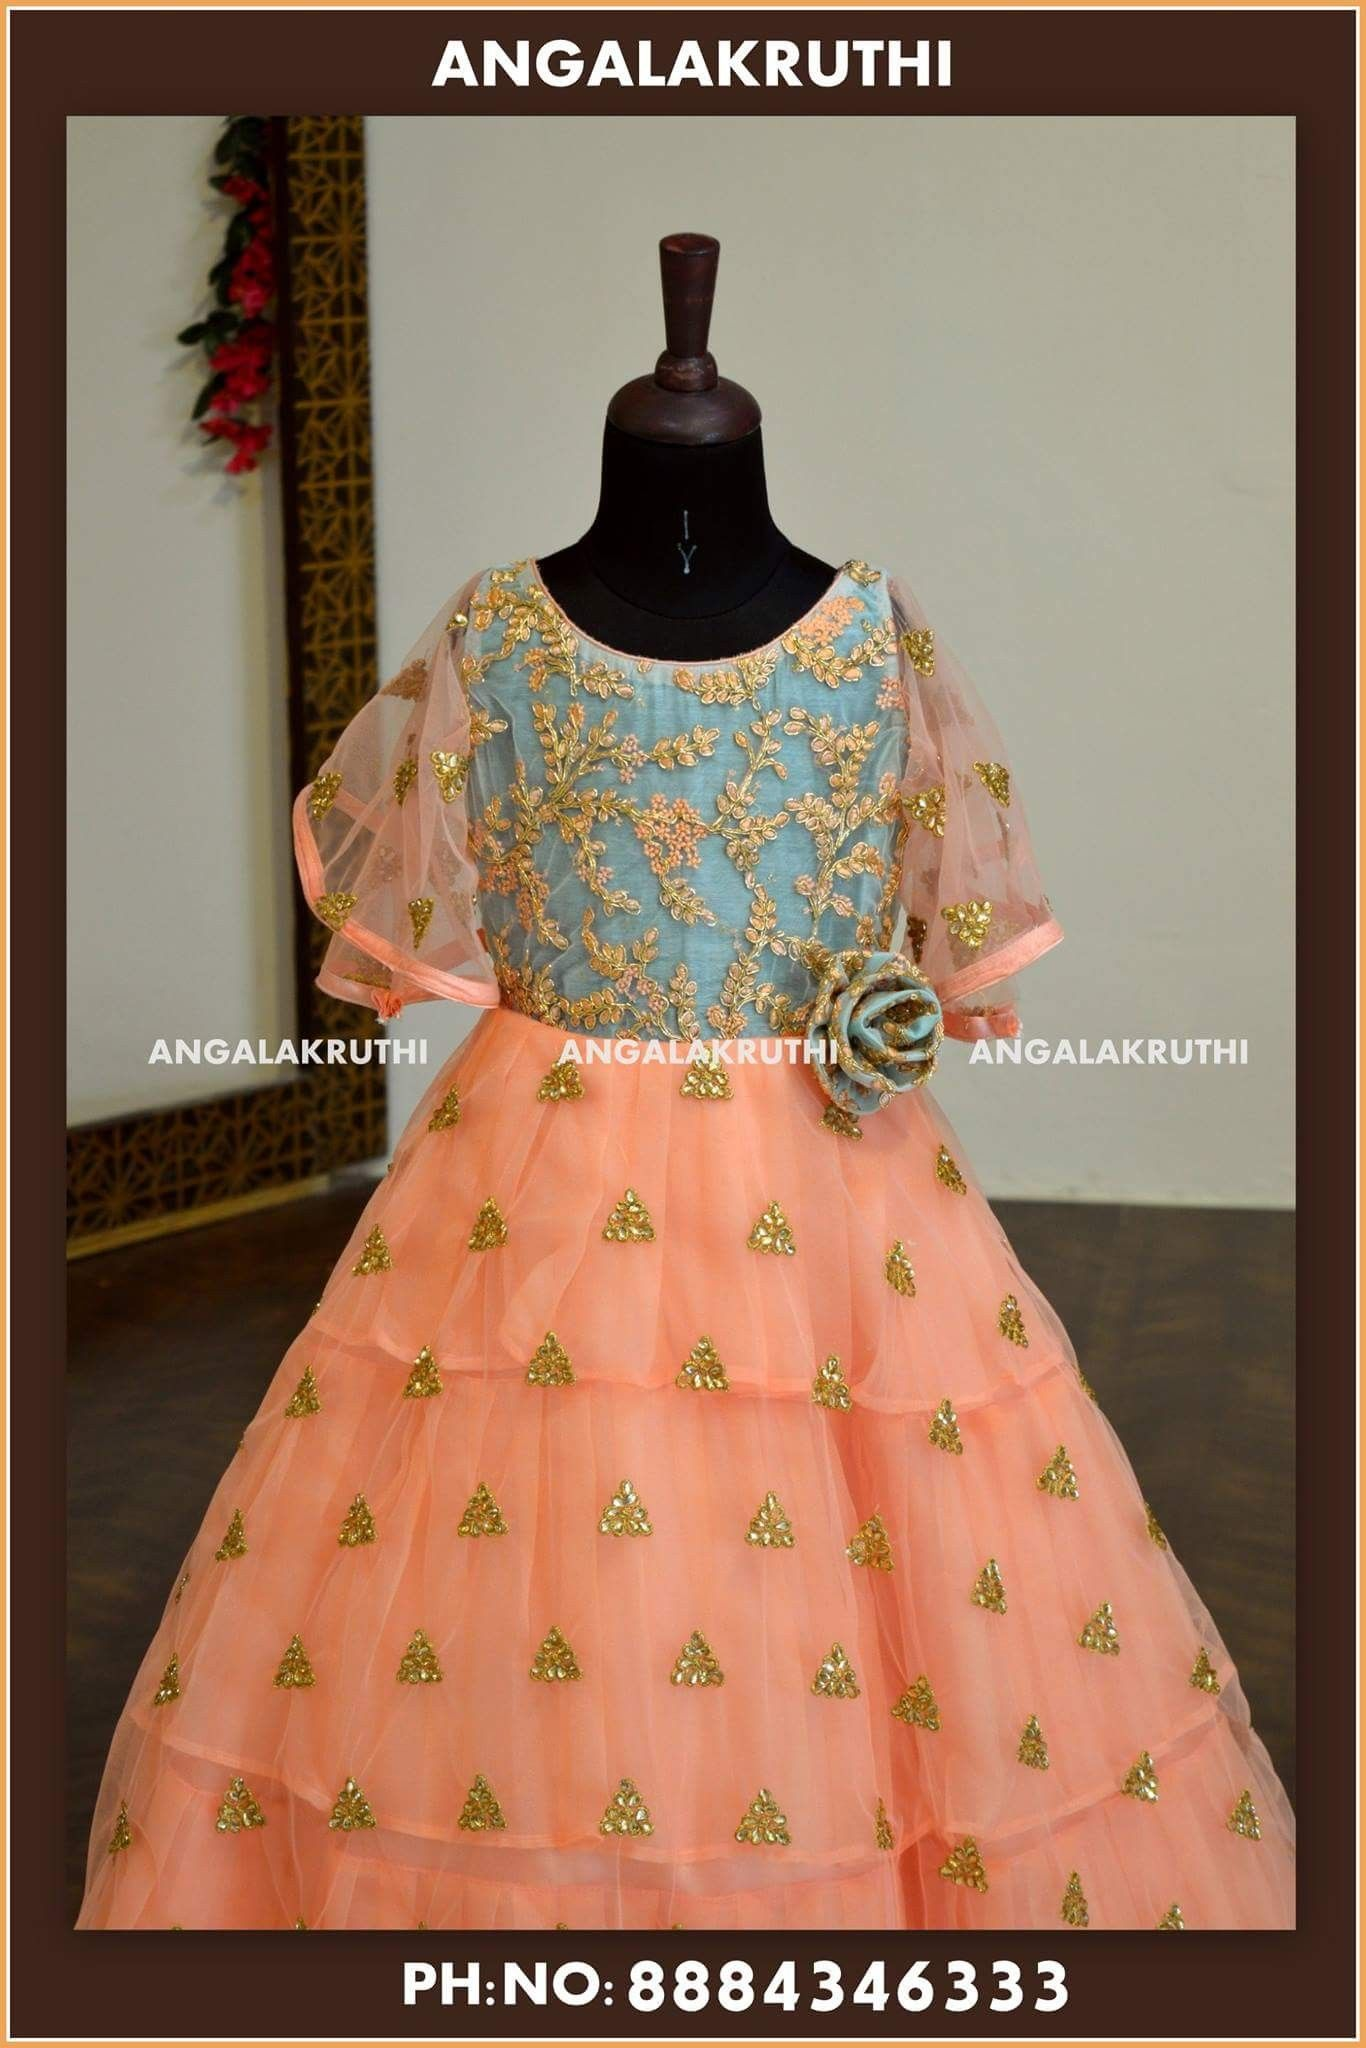 b970094f83a Kid frock designs by Angalakruthi boutique Bangalore Watsapp  number:+91-8884347333